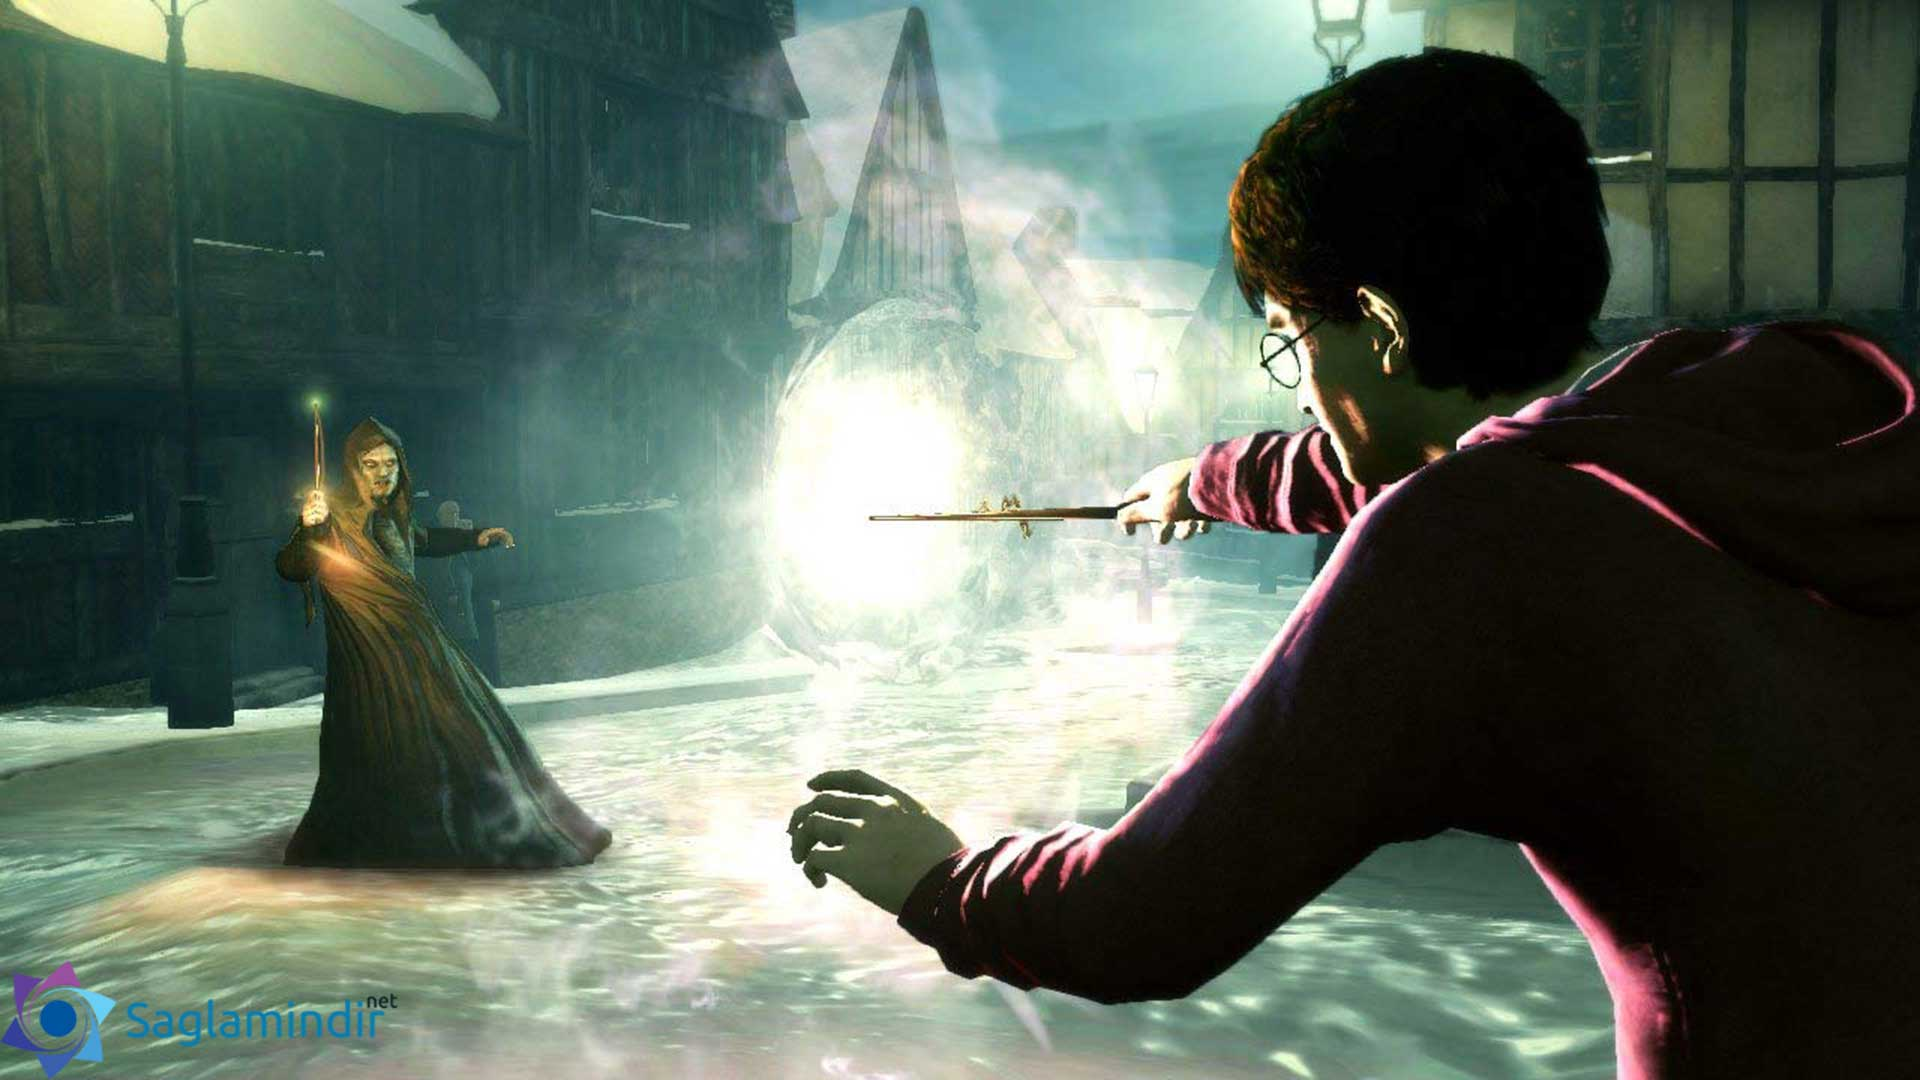 Harry Potter and the Deathly Hallows Part 1 saglamindir